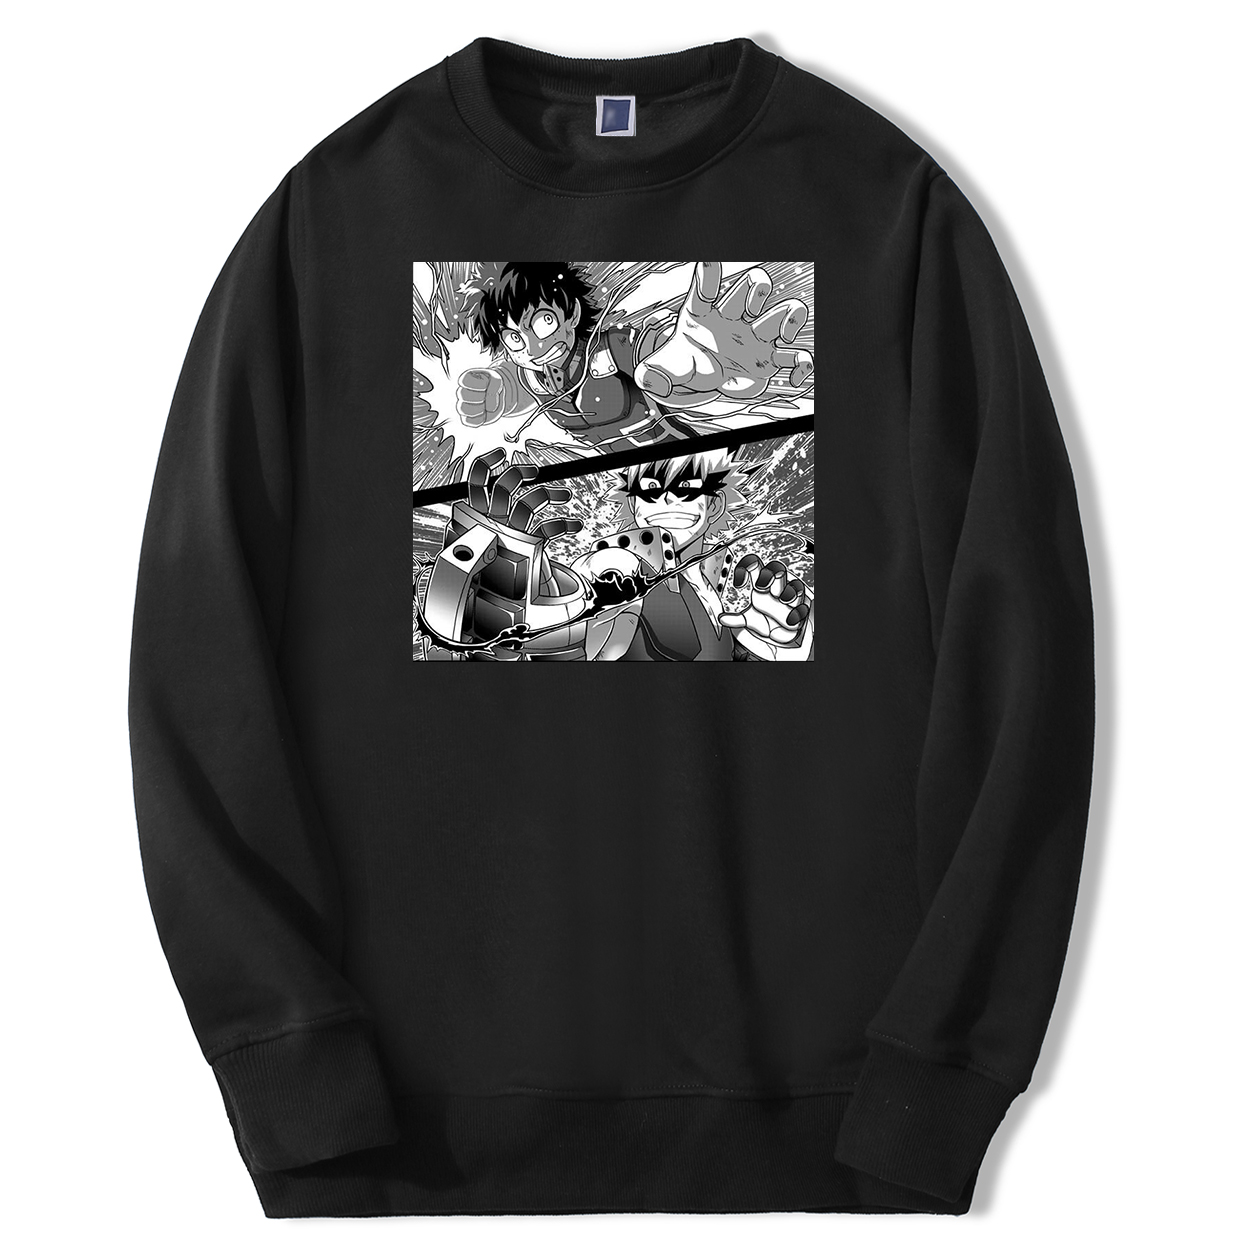 My Hero Academia Men Deku VS Bakugou Sweatshirts Hoodie Fleece Harajuku Streetwear Crewneck Spring Autumn Japan Anime Sweatshirt